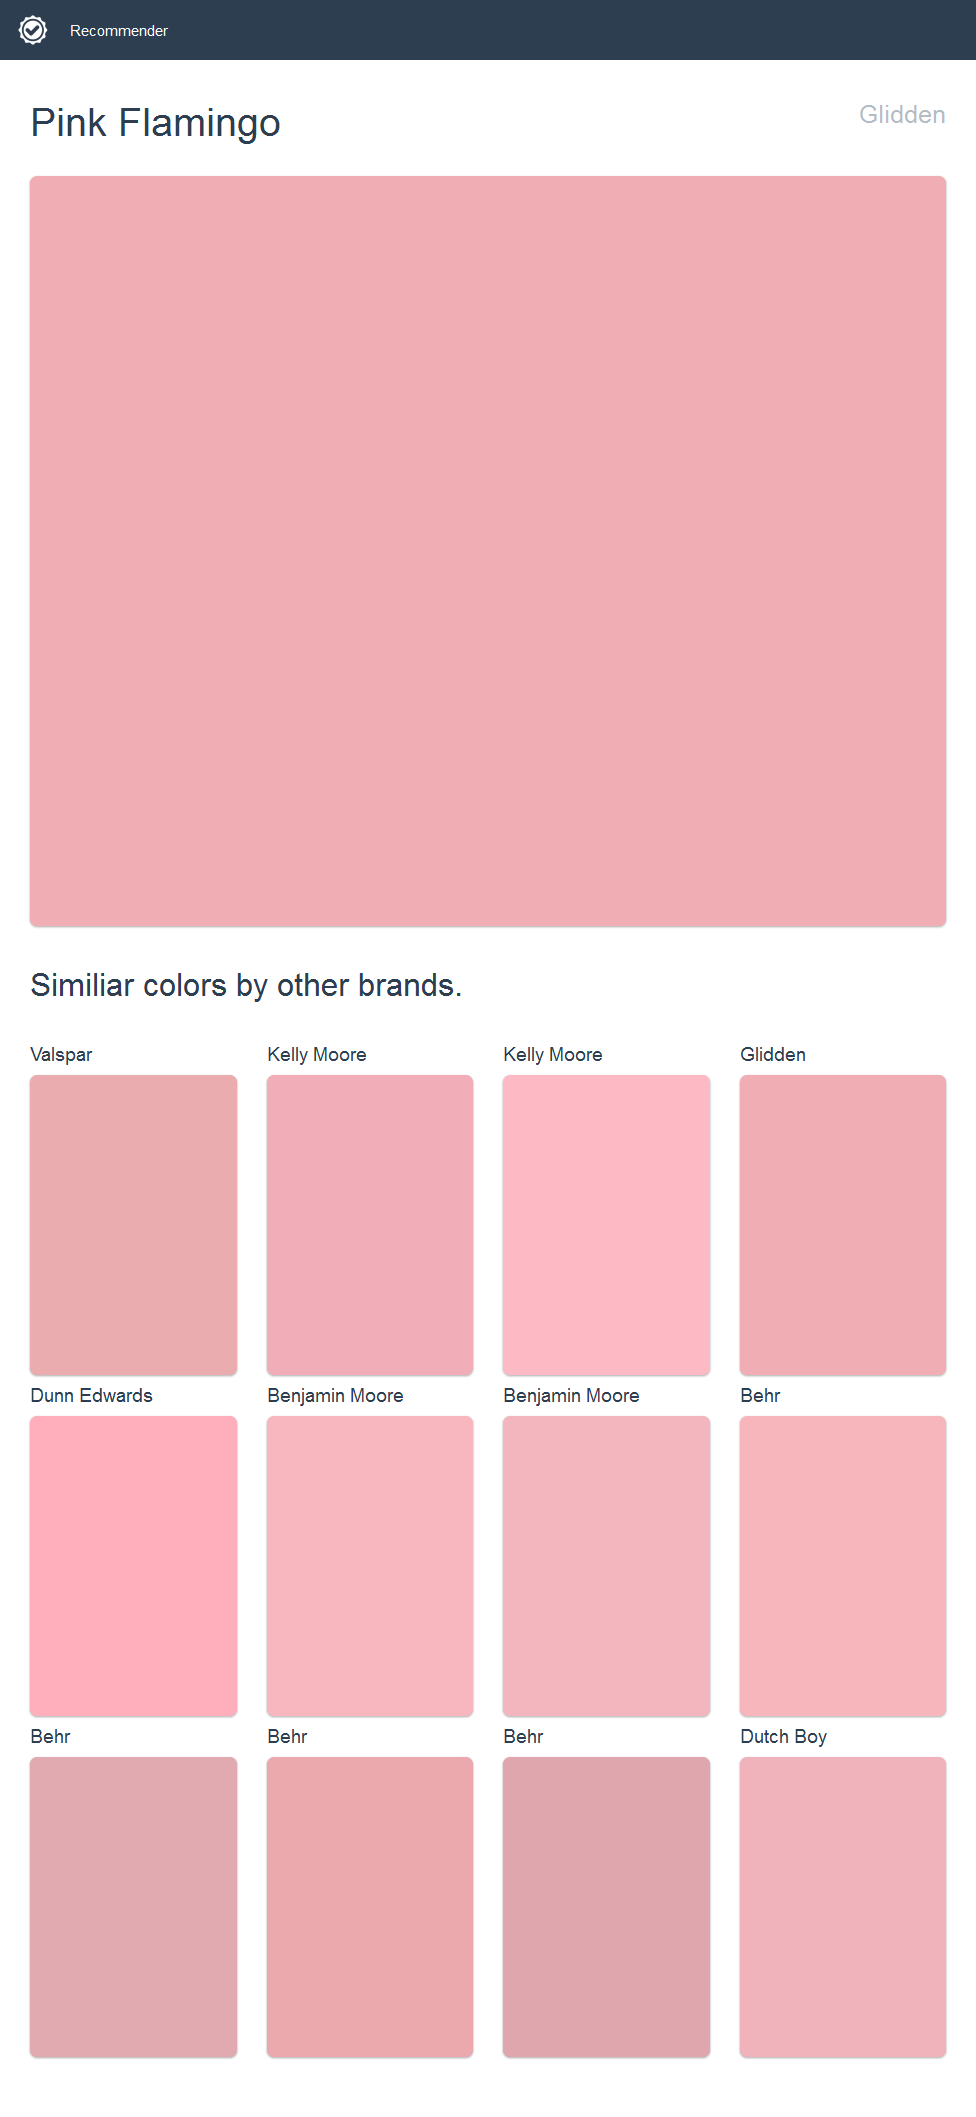 Pink Flamingo, Glidden. Click the image to see similiar colors by ...